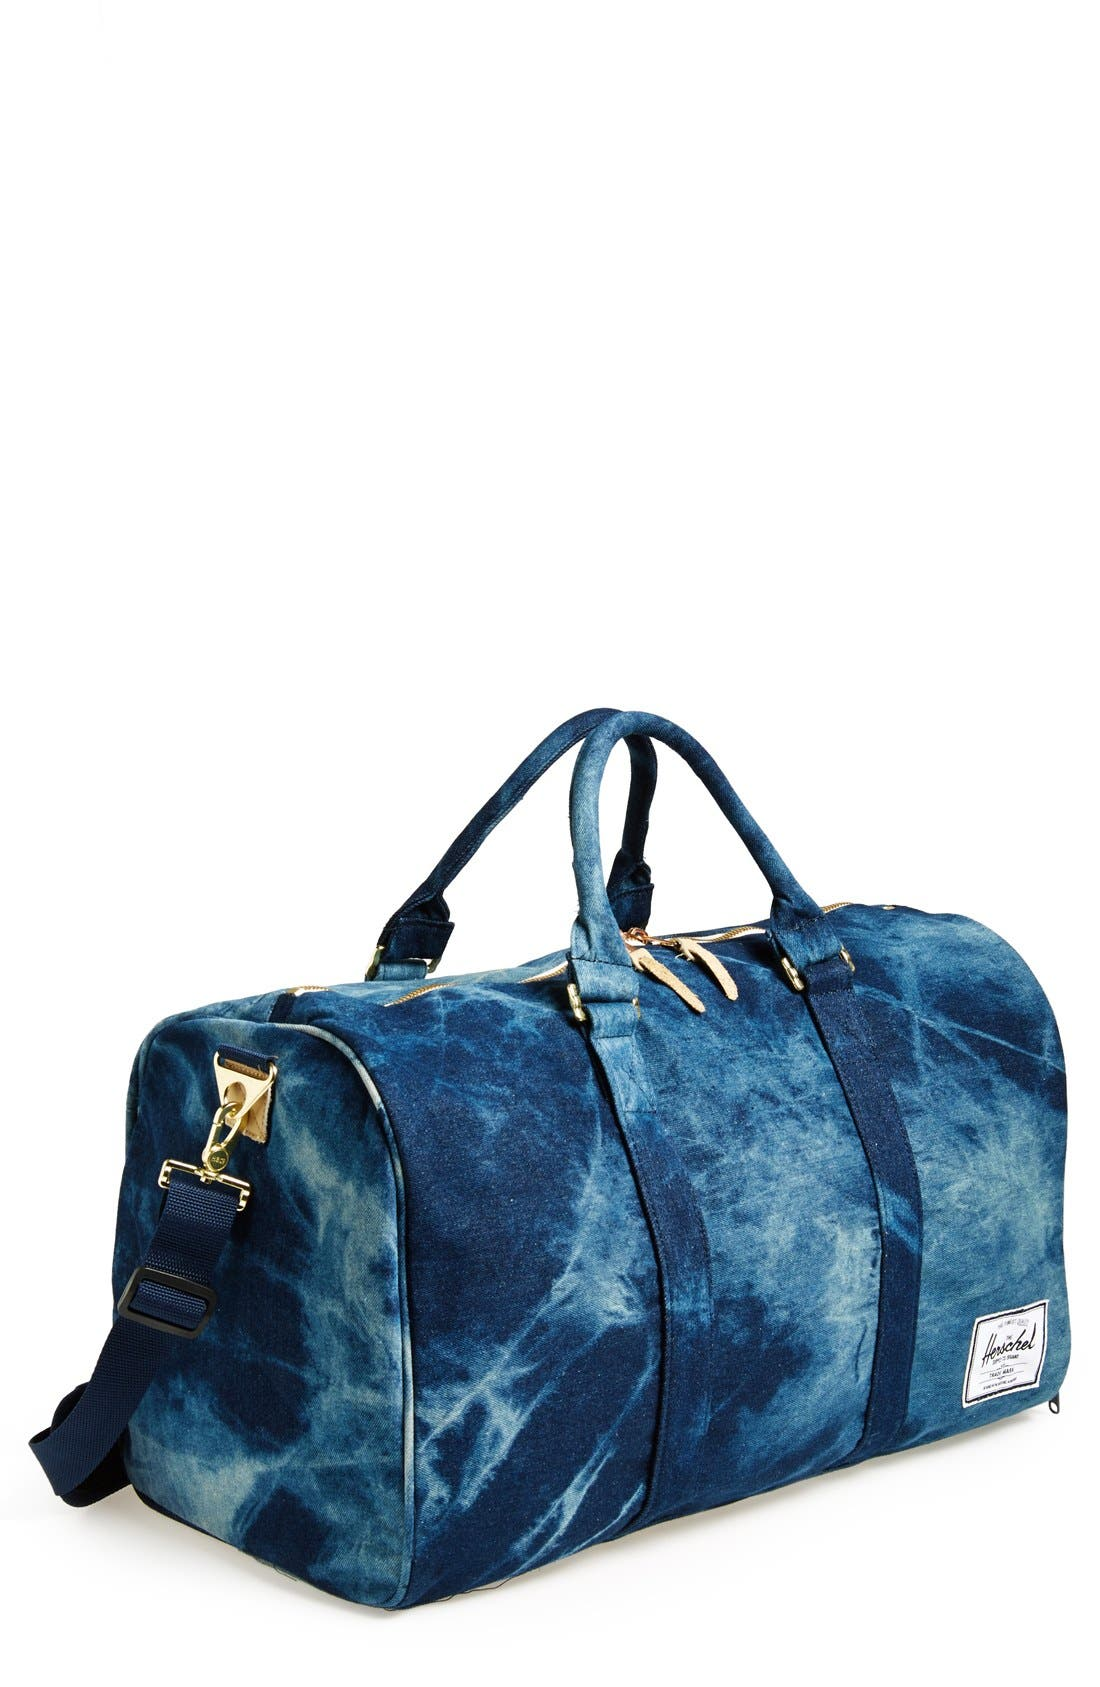 Alternate Image 1 Selected - Herschel Supply Co. 'Novel' Duffel Bag